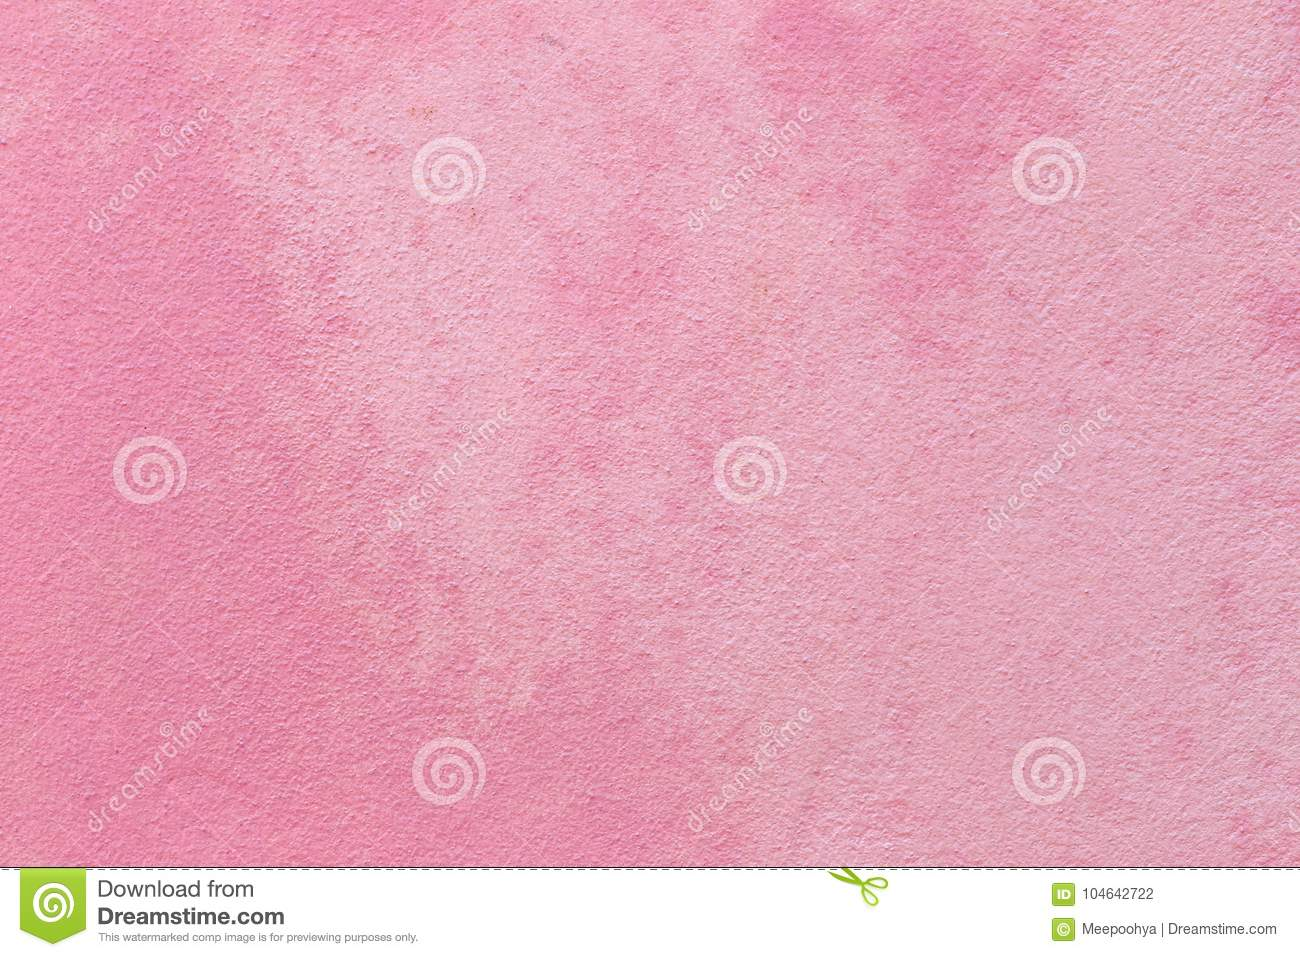 Pink concrete wall background.